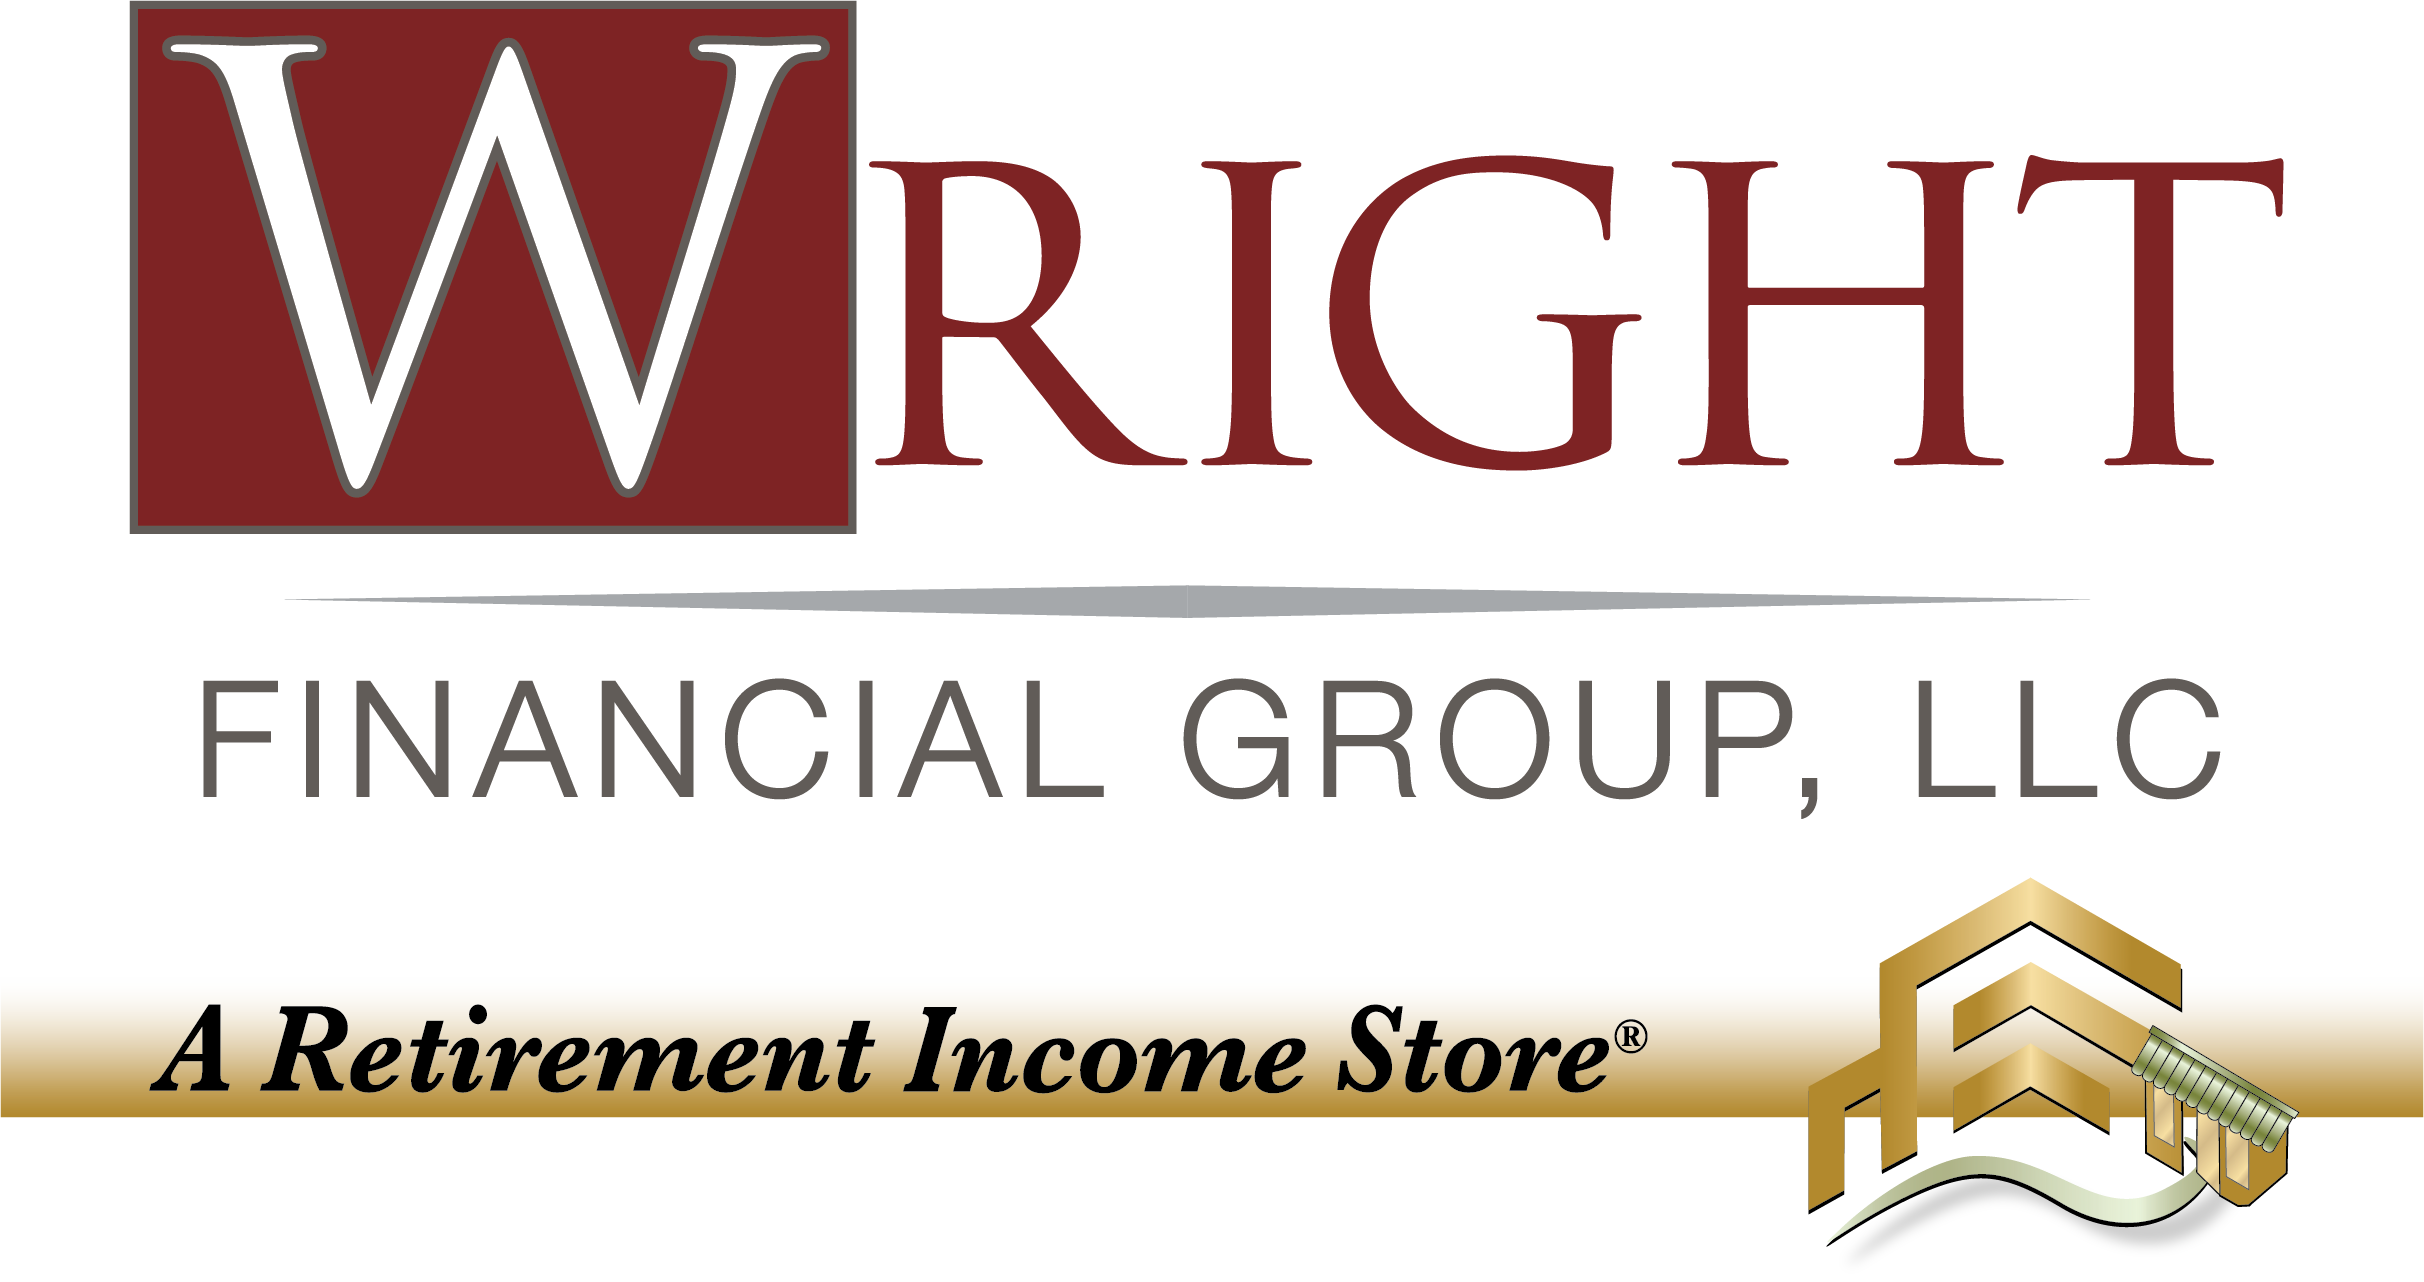 Wright Financial Group, LLC